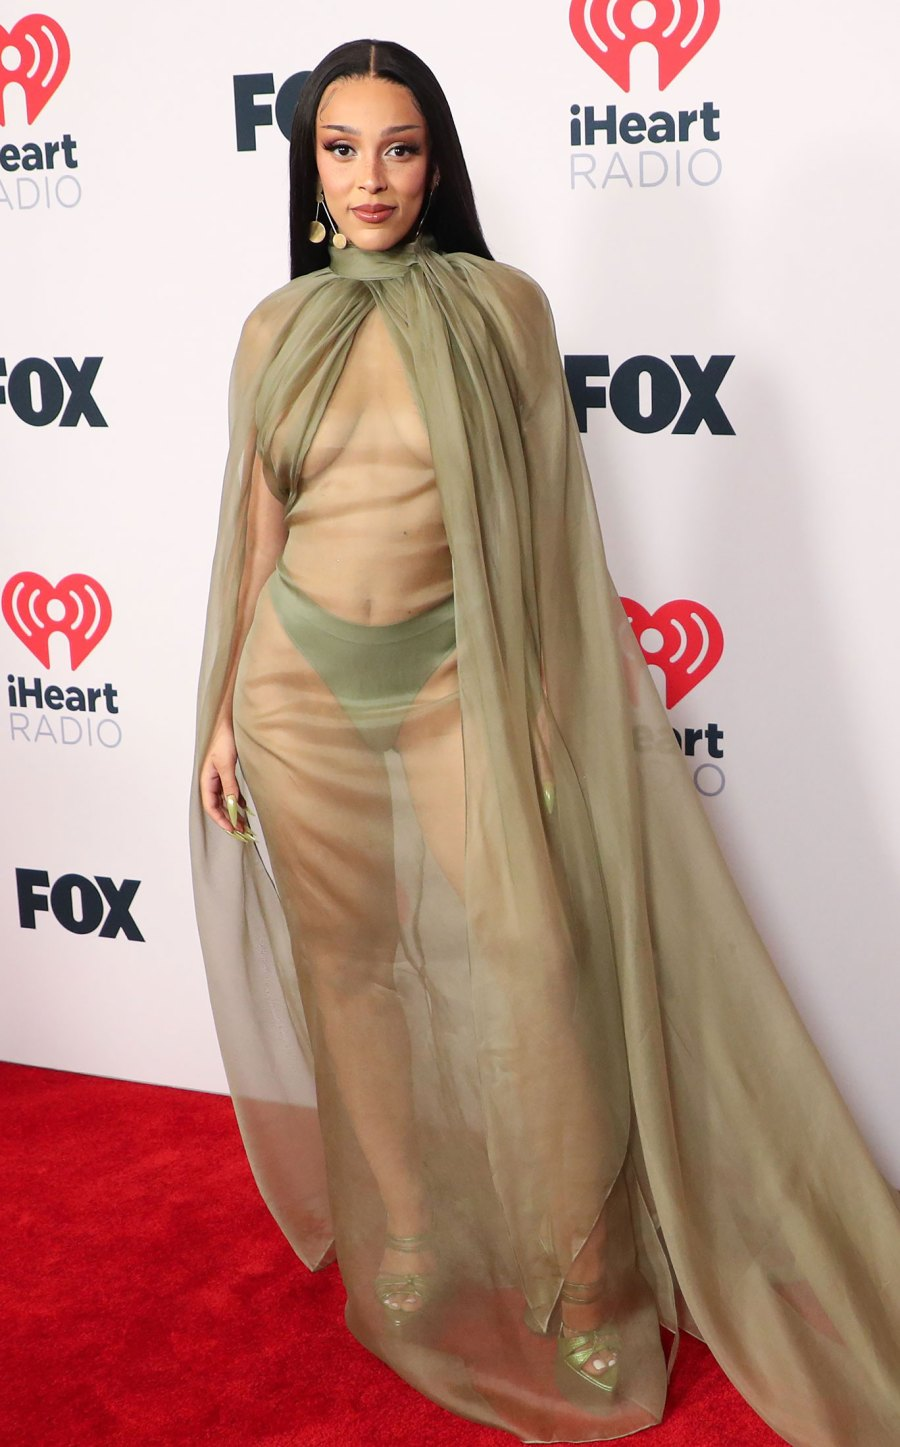 See What the Stars Wore to the iHeartRadio Music Awards